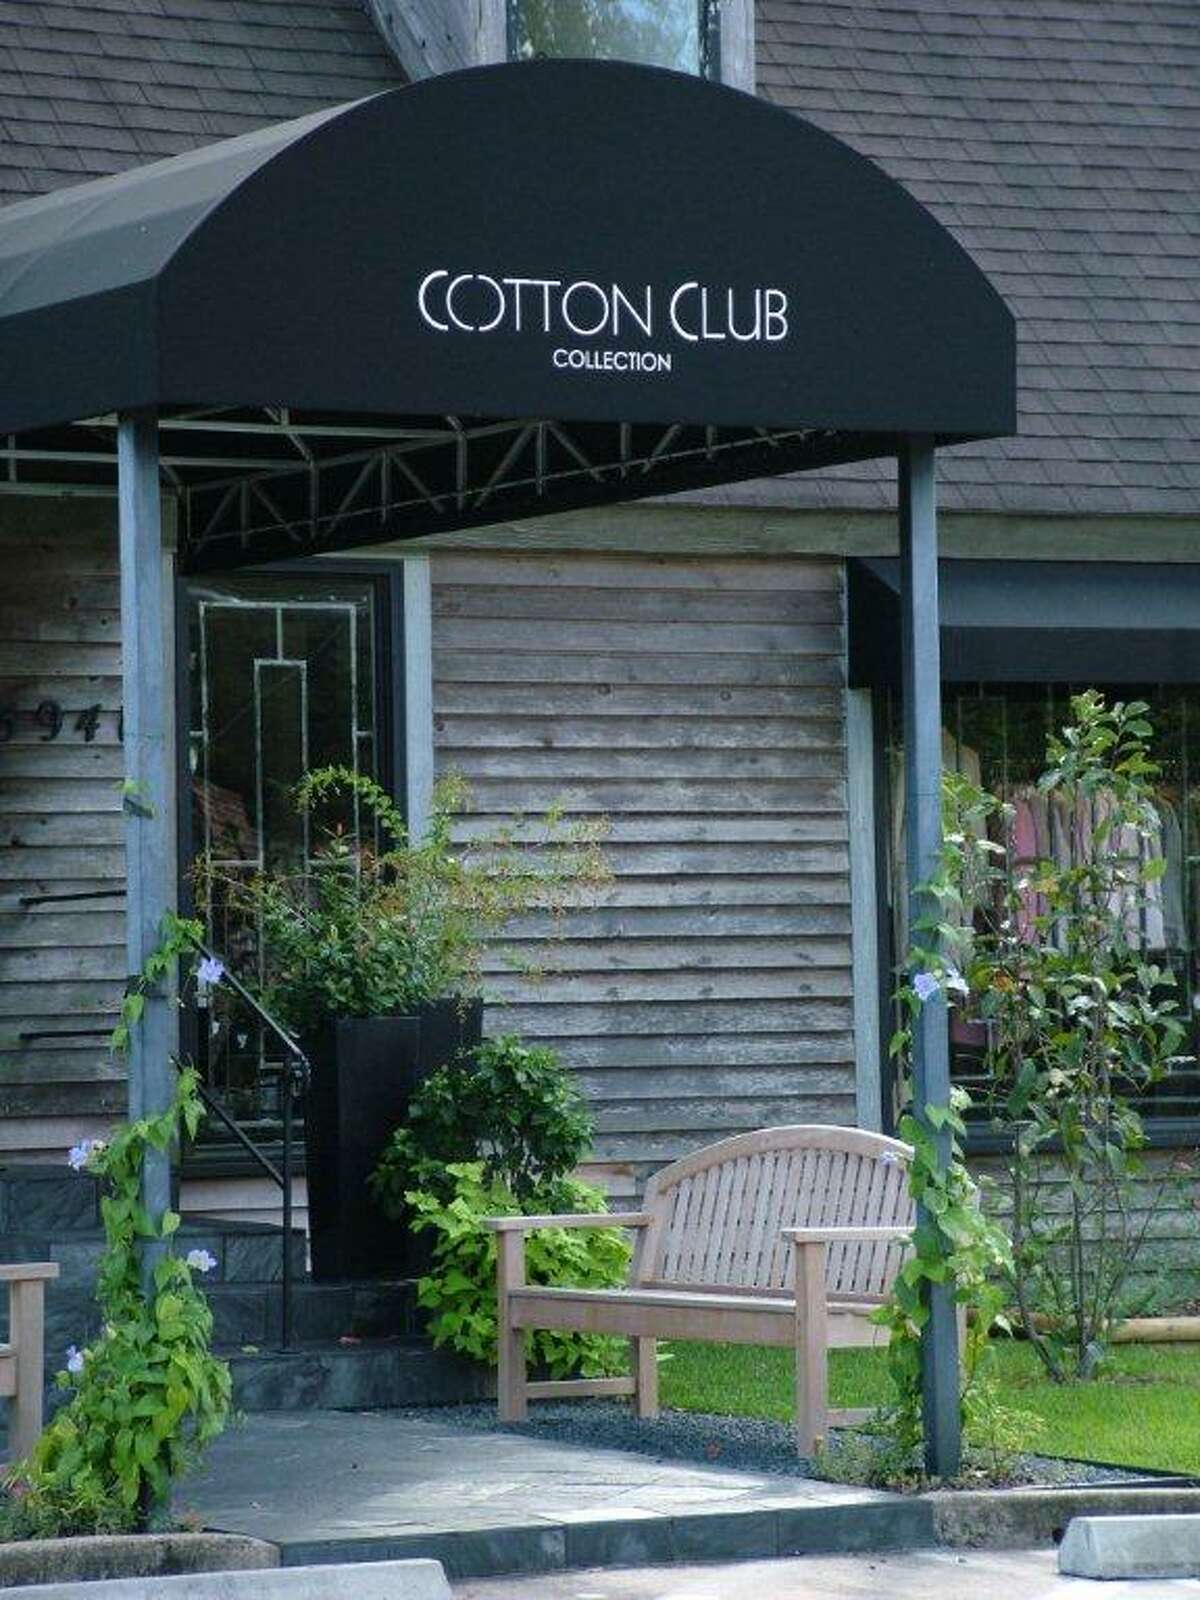 The Cotton Club shop in the River Oaks area is participating in the Houston for Houston online shopping event.